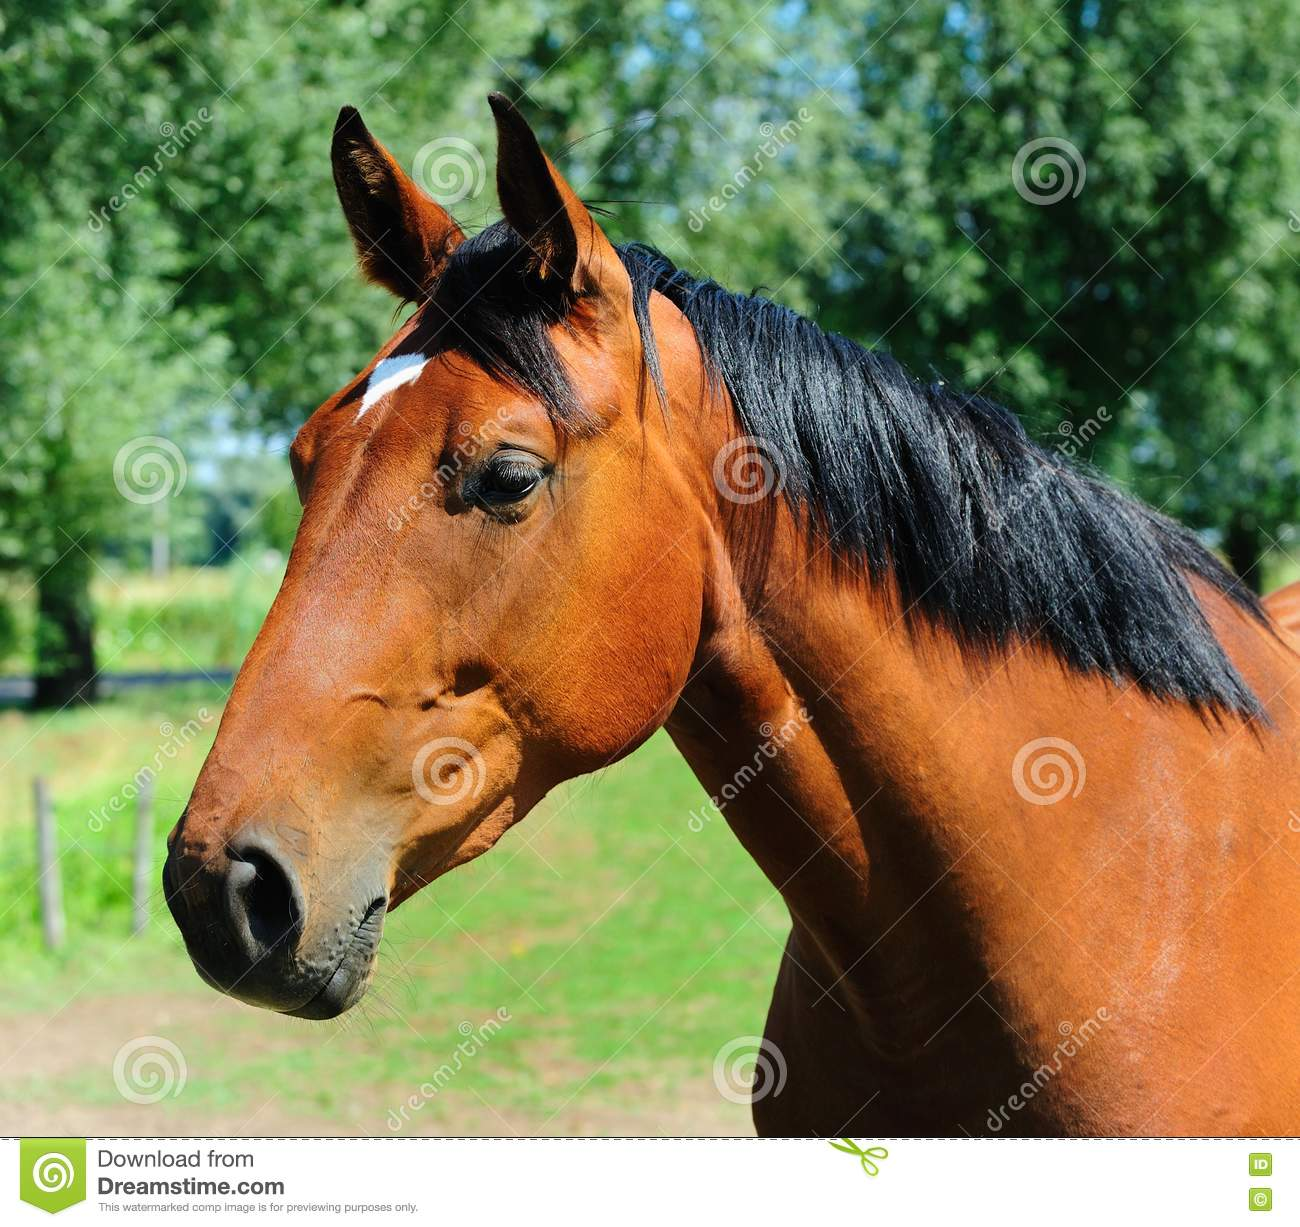 Animal Farm Wallpaper Brown Horse Head Stock Photo Image Of Equestrian Meadow